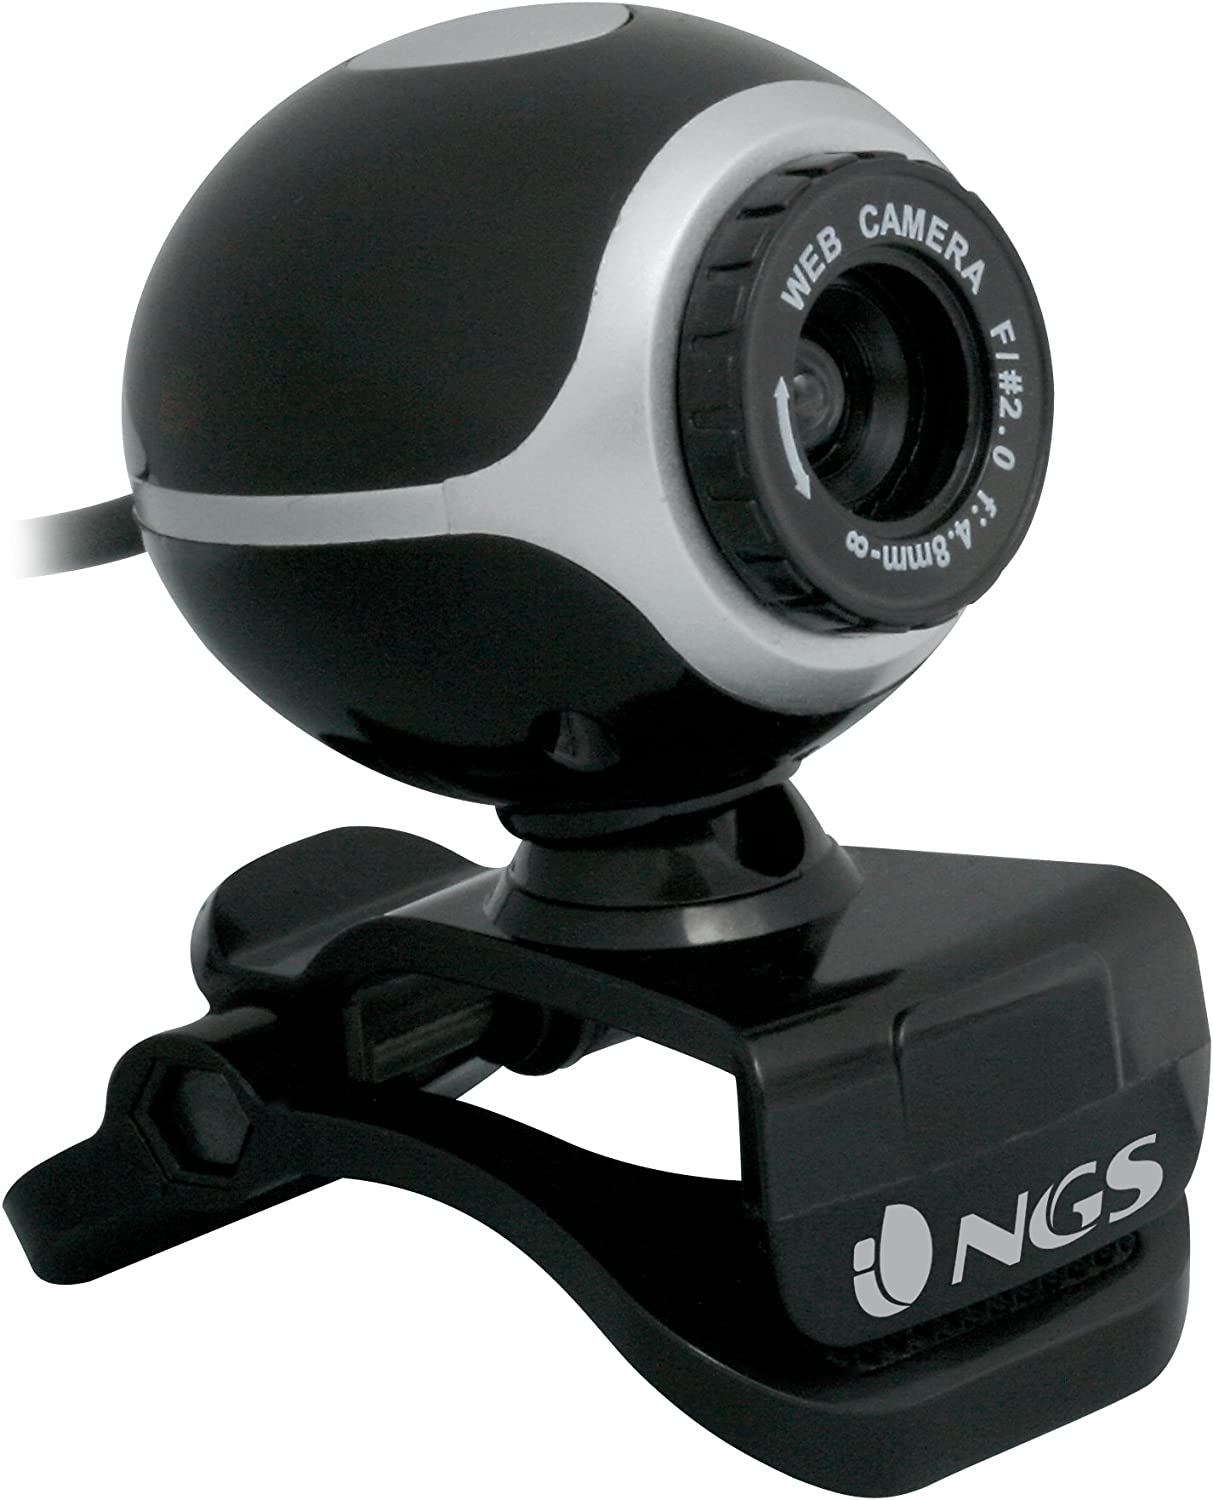 Webcam Usb Con Micro Inc Sensor Cmos 300k Ngs Xpresscam 300 Cap Imagen Video Zoom Color Negro Ngs Amazon Es Informática